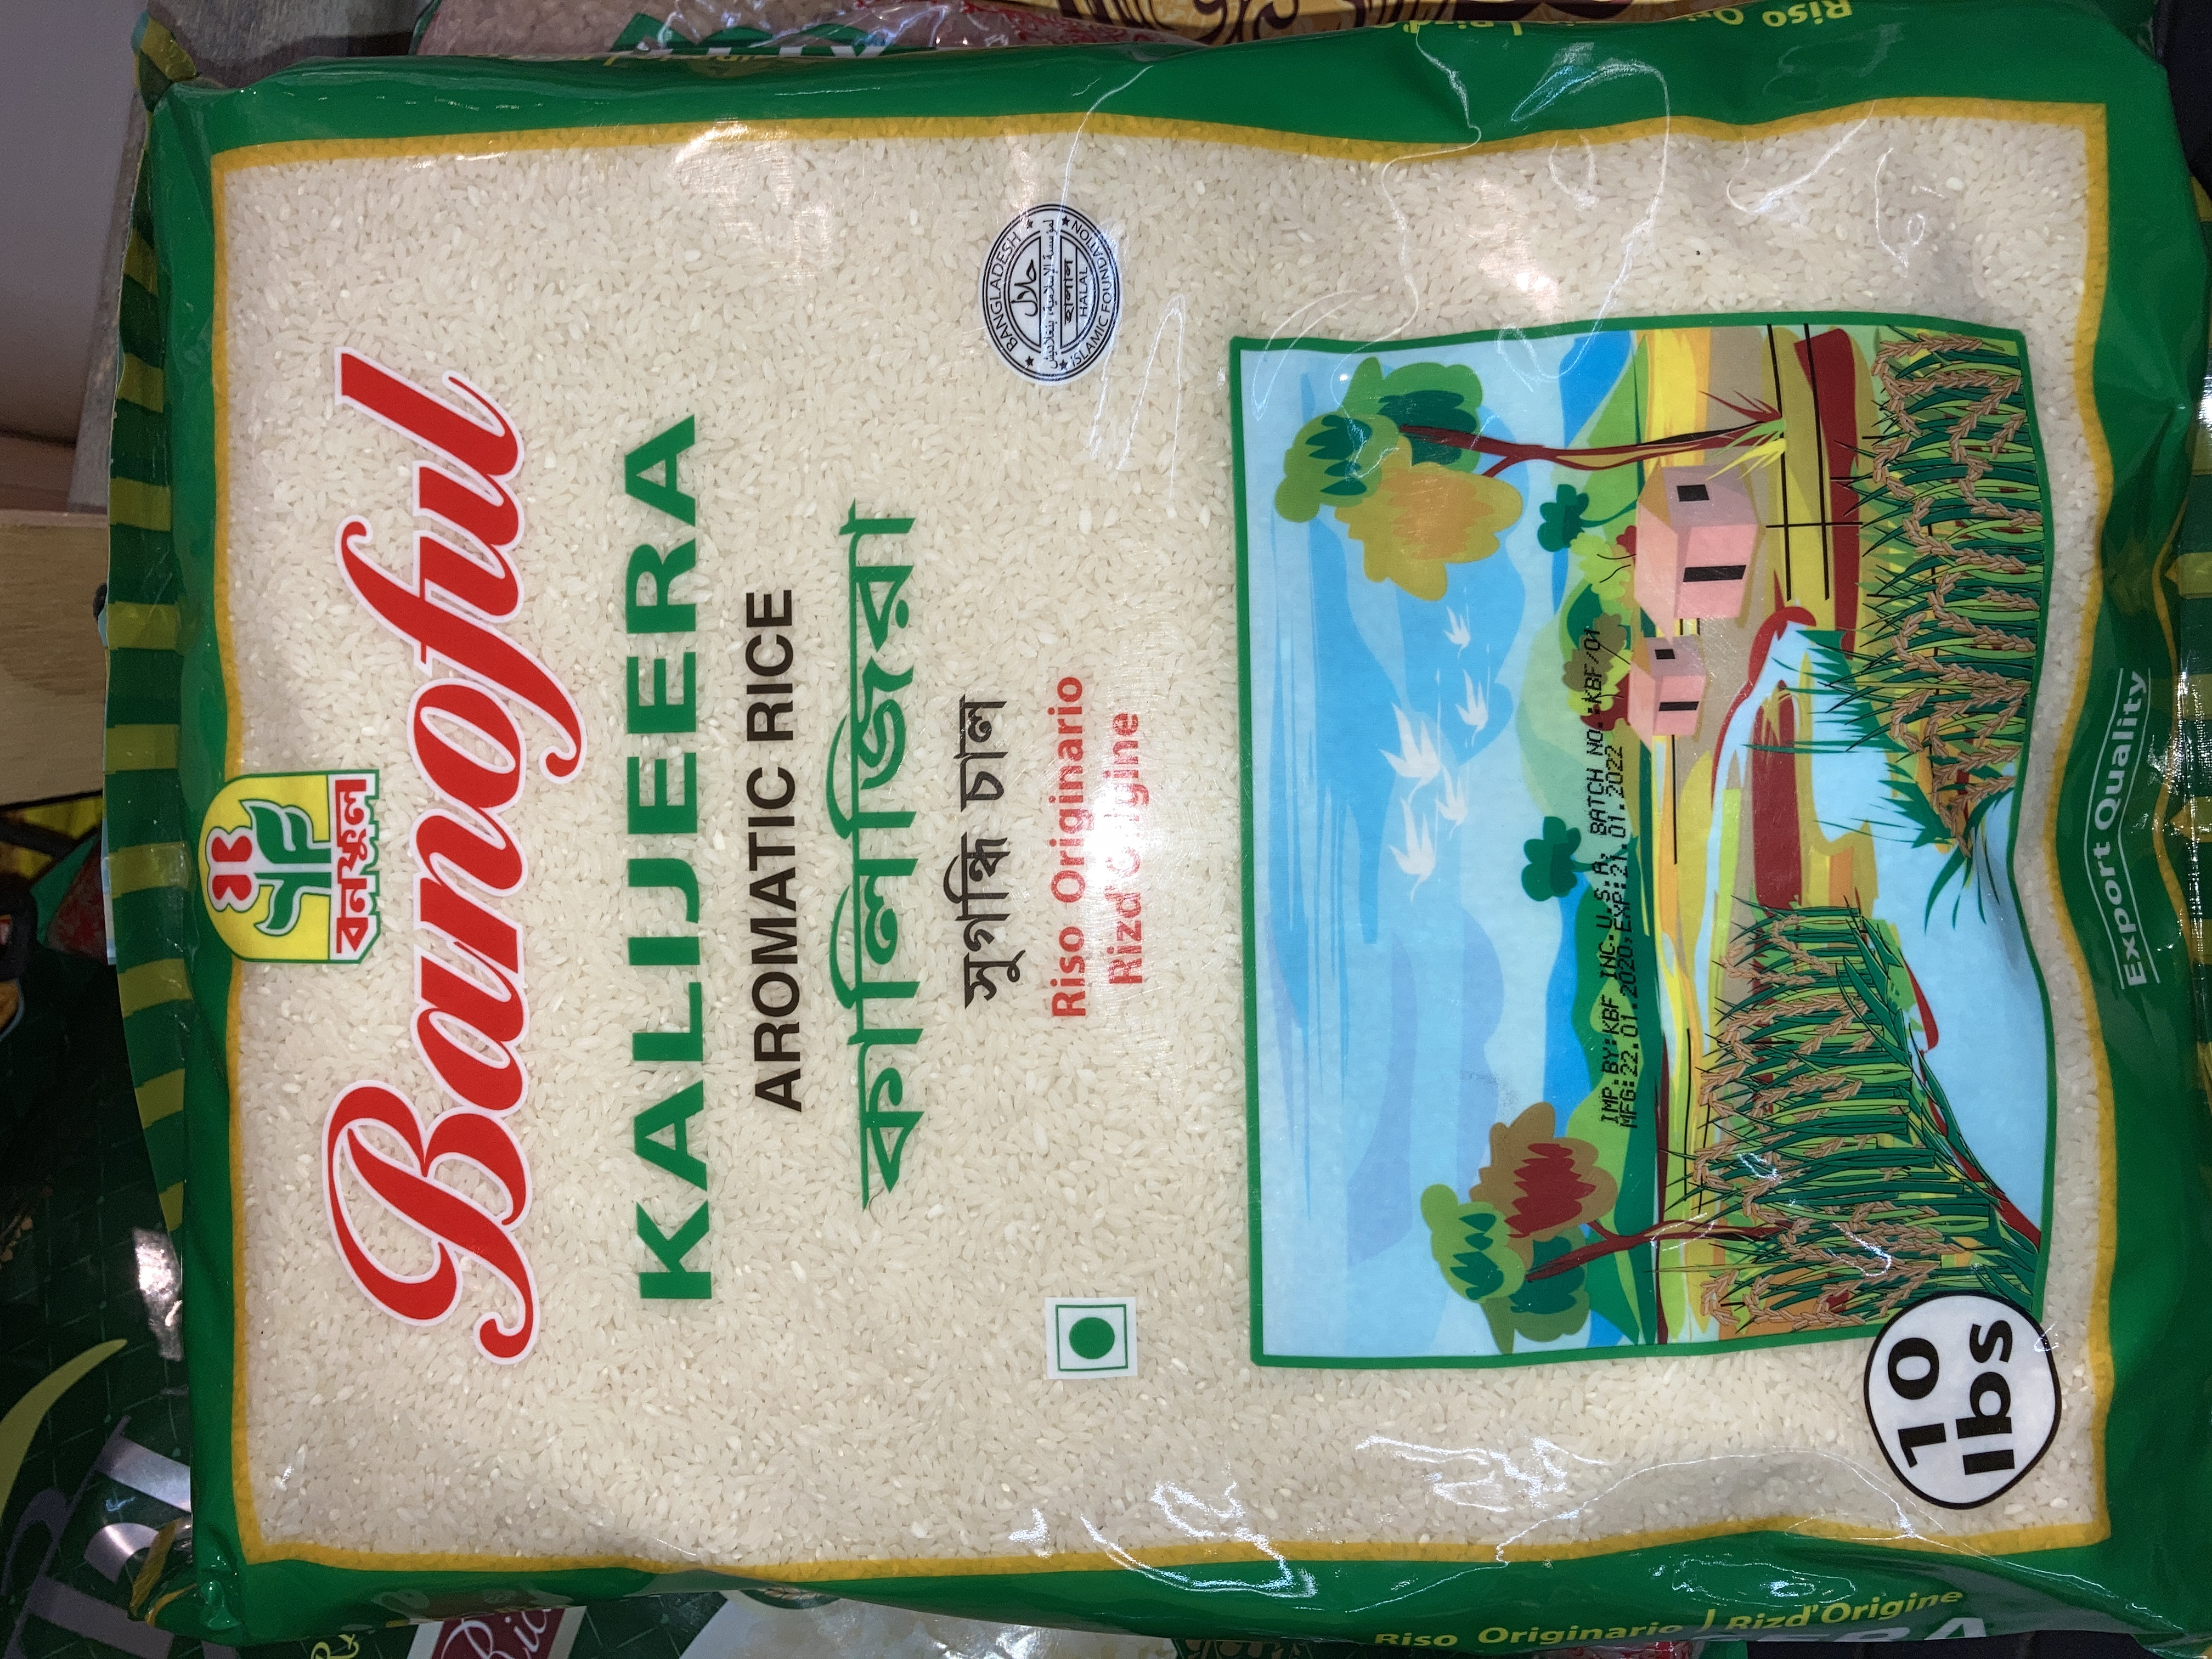 Banoful KALIJEERA AROMATIC RICE 10LBS